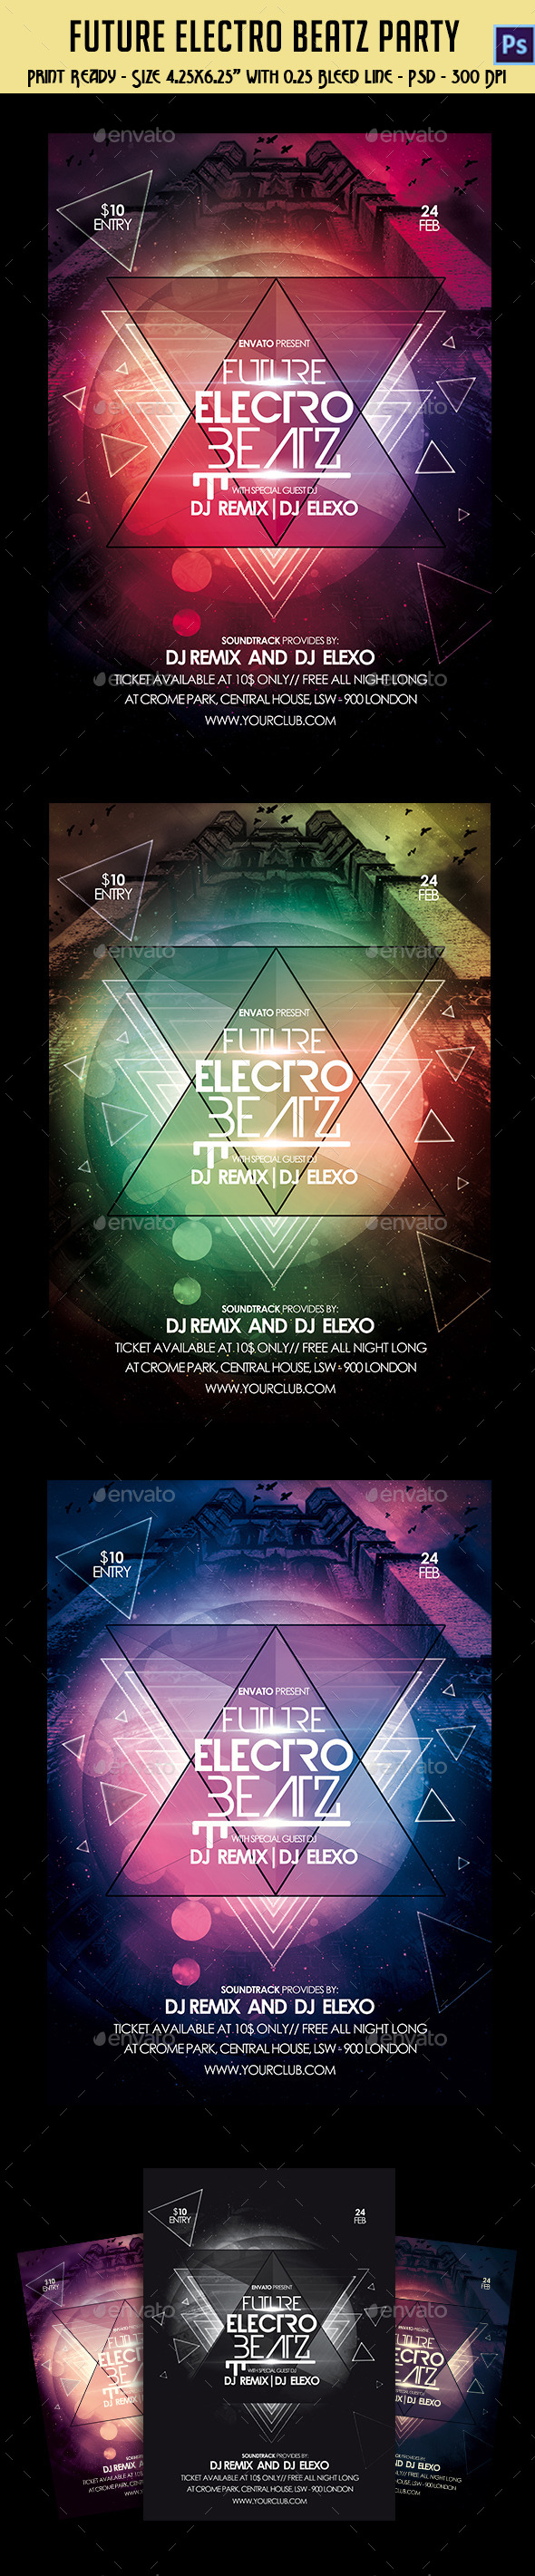 Future Electro Beatz Party Flyer - Clubs & Parties Events